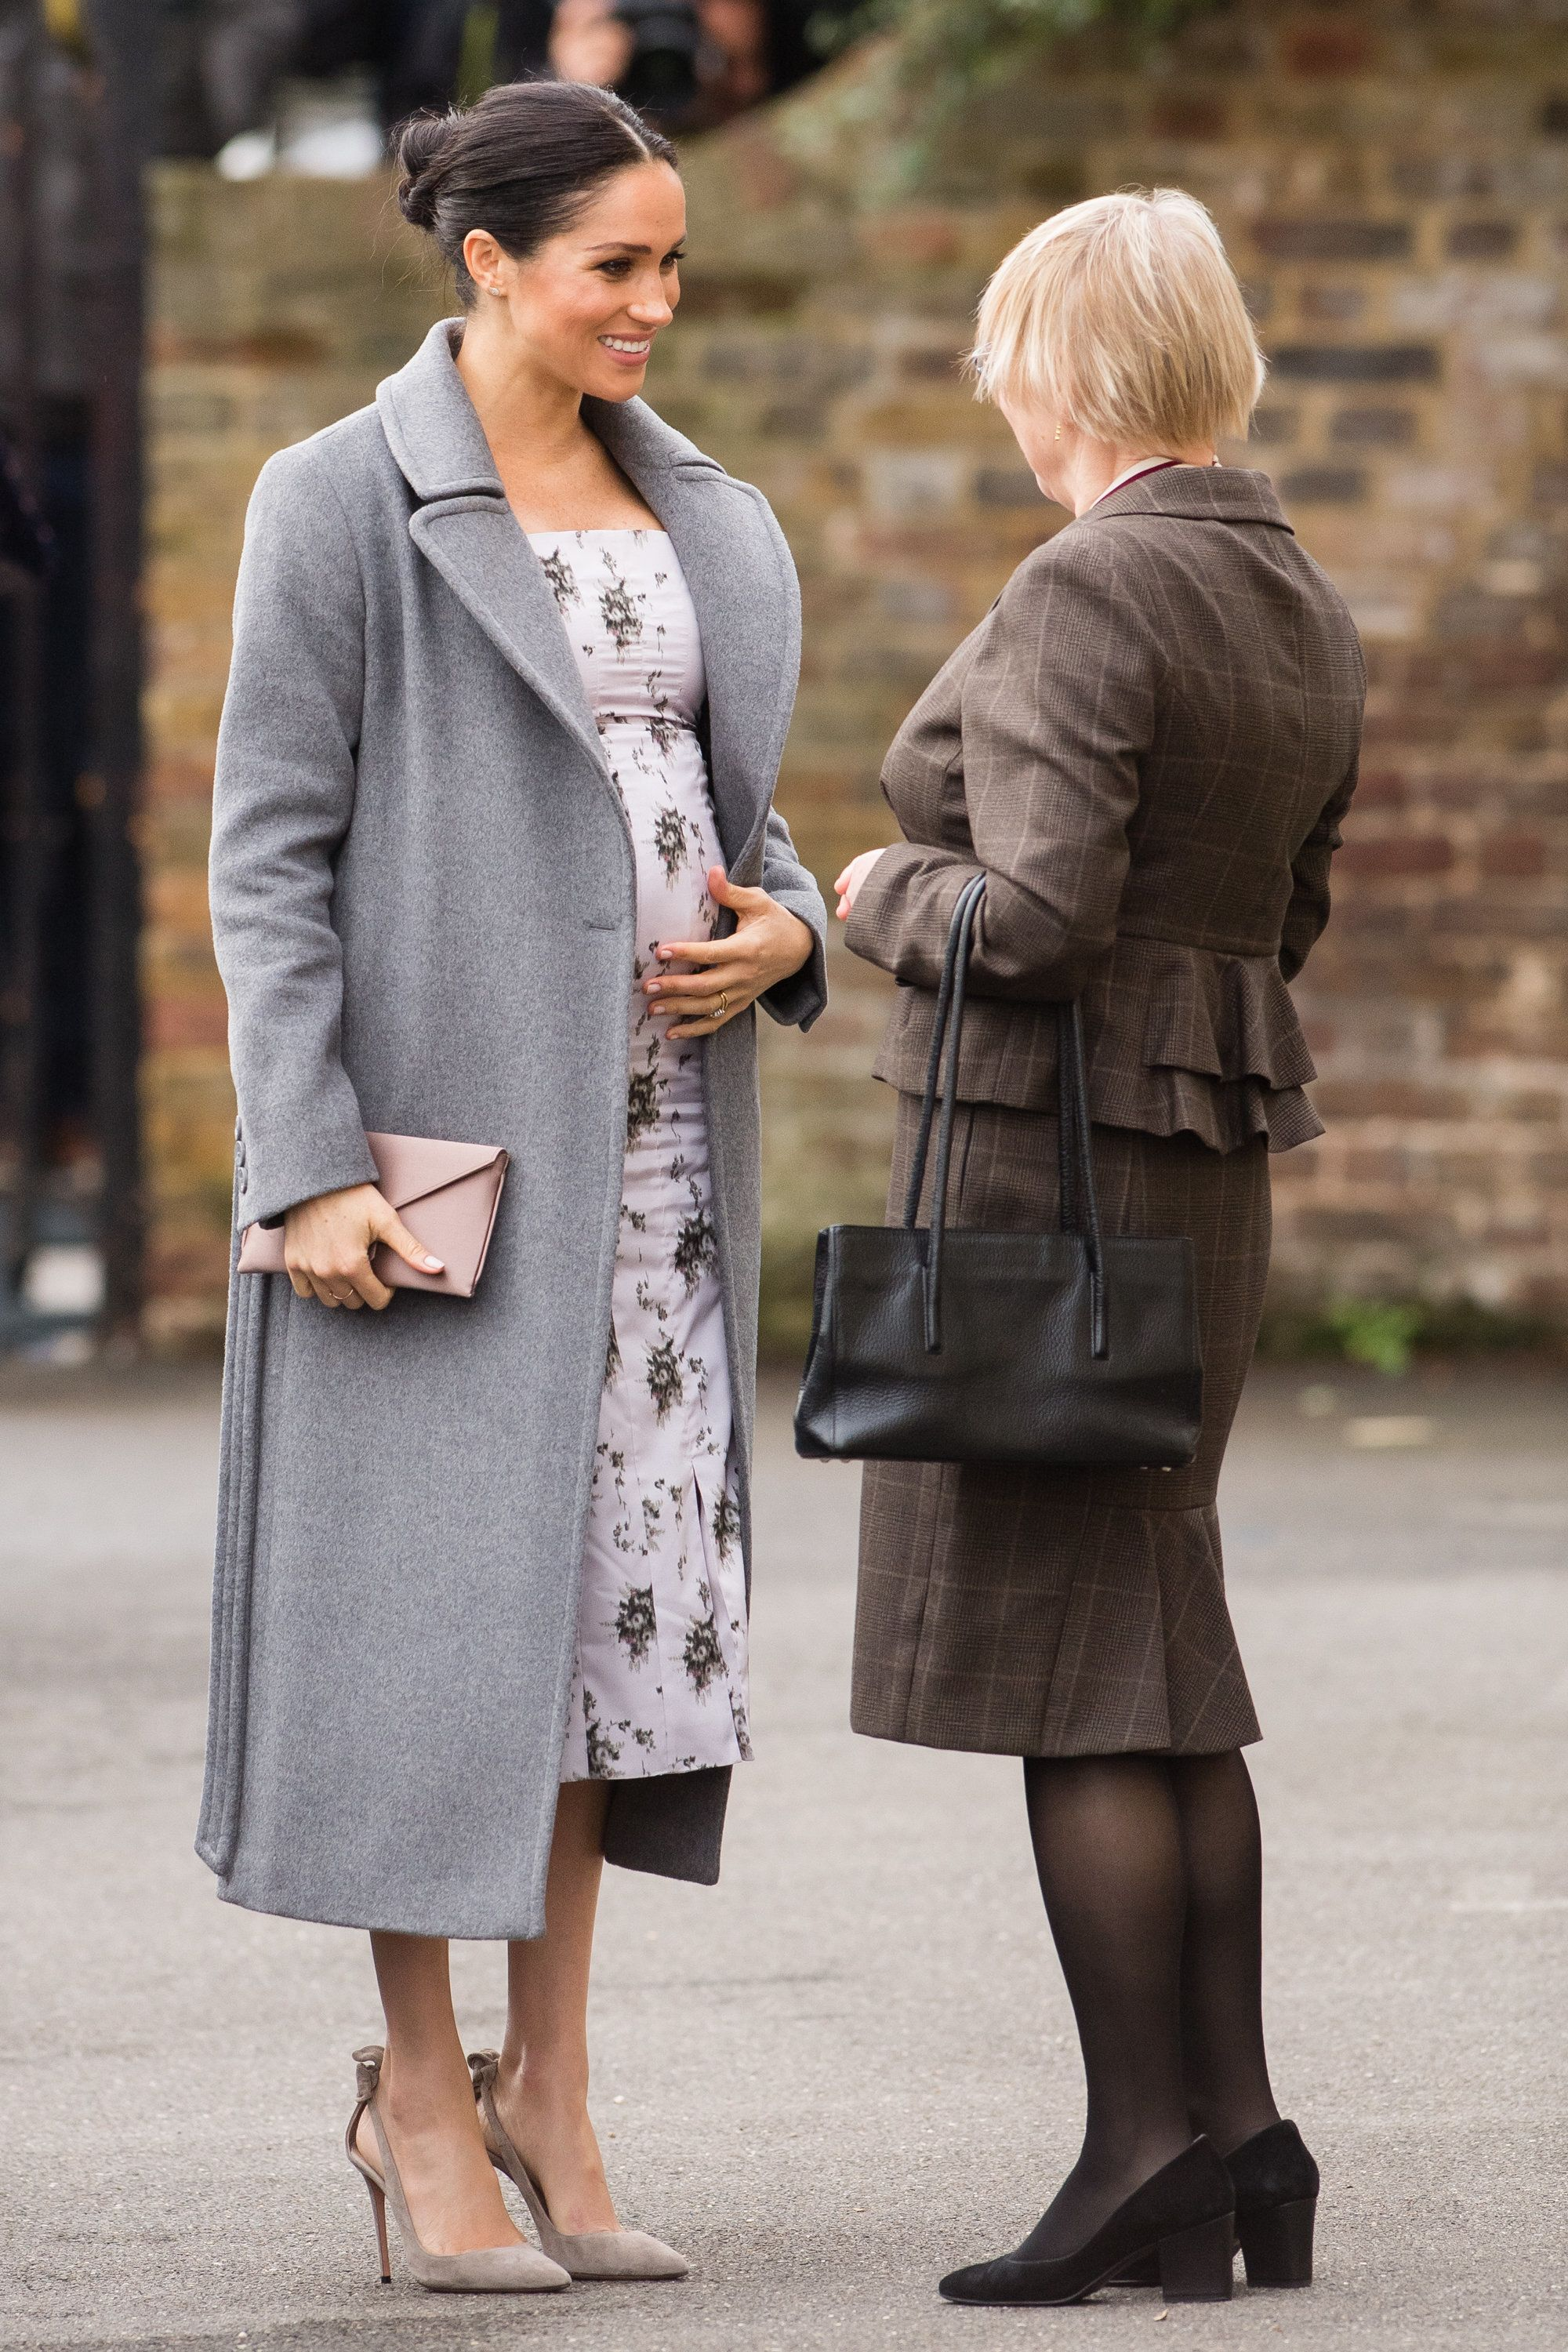 TWICKENHAM, ENGLAND - DECEMBER 18: Meghan, Duchess of Sussex visits the Royal Variety Charity's at Brinsworth House on December 18, 2018 in Twickenham, England. (Photo by Samir Hussein/WireImage)